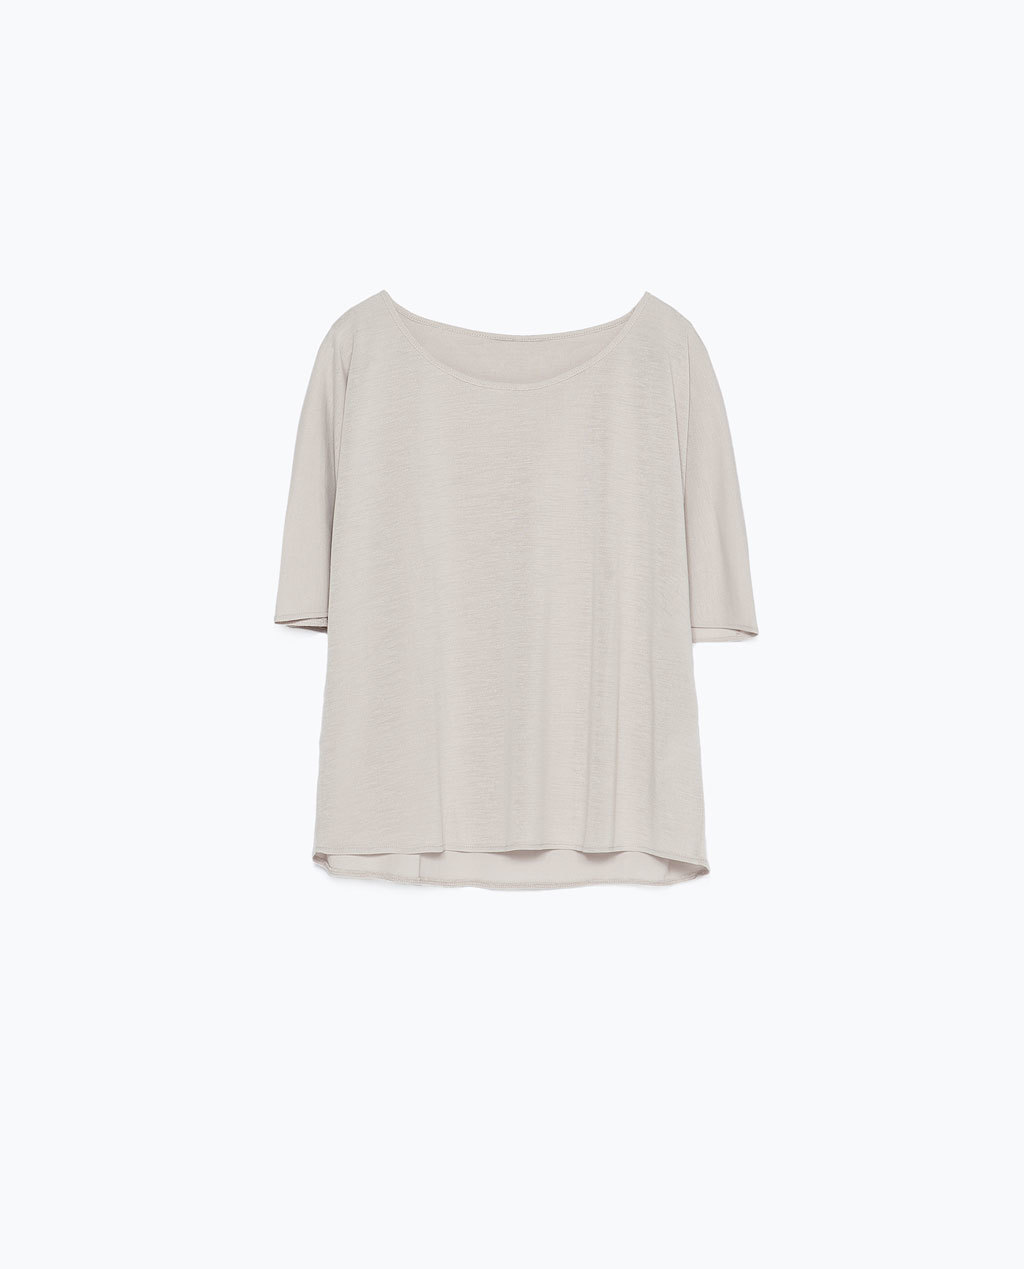 Double Layer T Shirt - sleeve style: angel/waterfall; pattern: plain; style: t-shirt; predominant colour: stone; occasions: casual, creative work; length: standard; neckline: scoop; fibres: polyester/polyamide - stretch; fit: straight cut; sleeve length: 3/4 length; texture group: crepes; pattern type: fabric; season: s/s 2015; wardrobe: basic